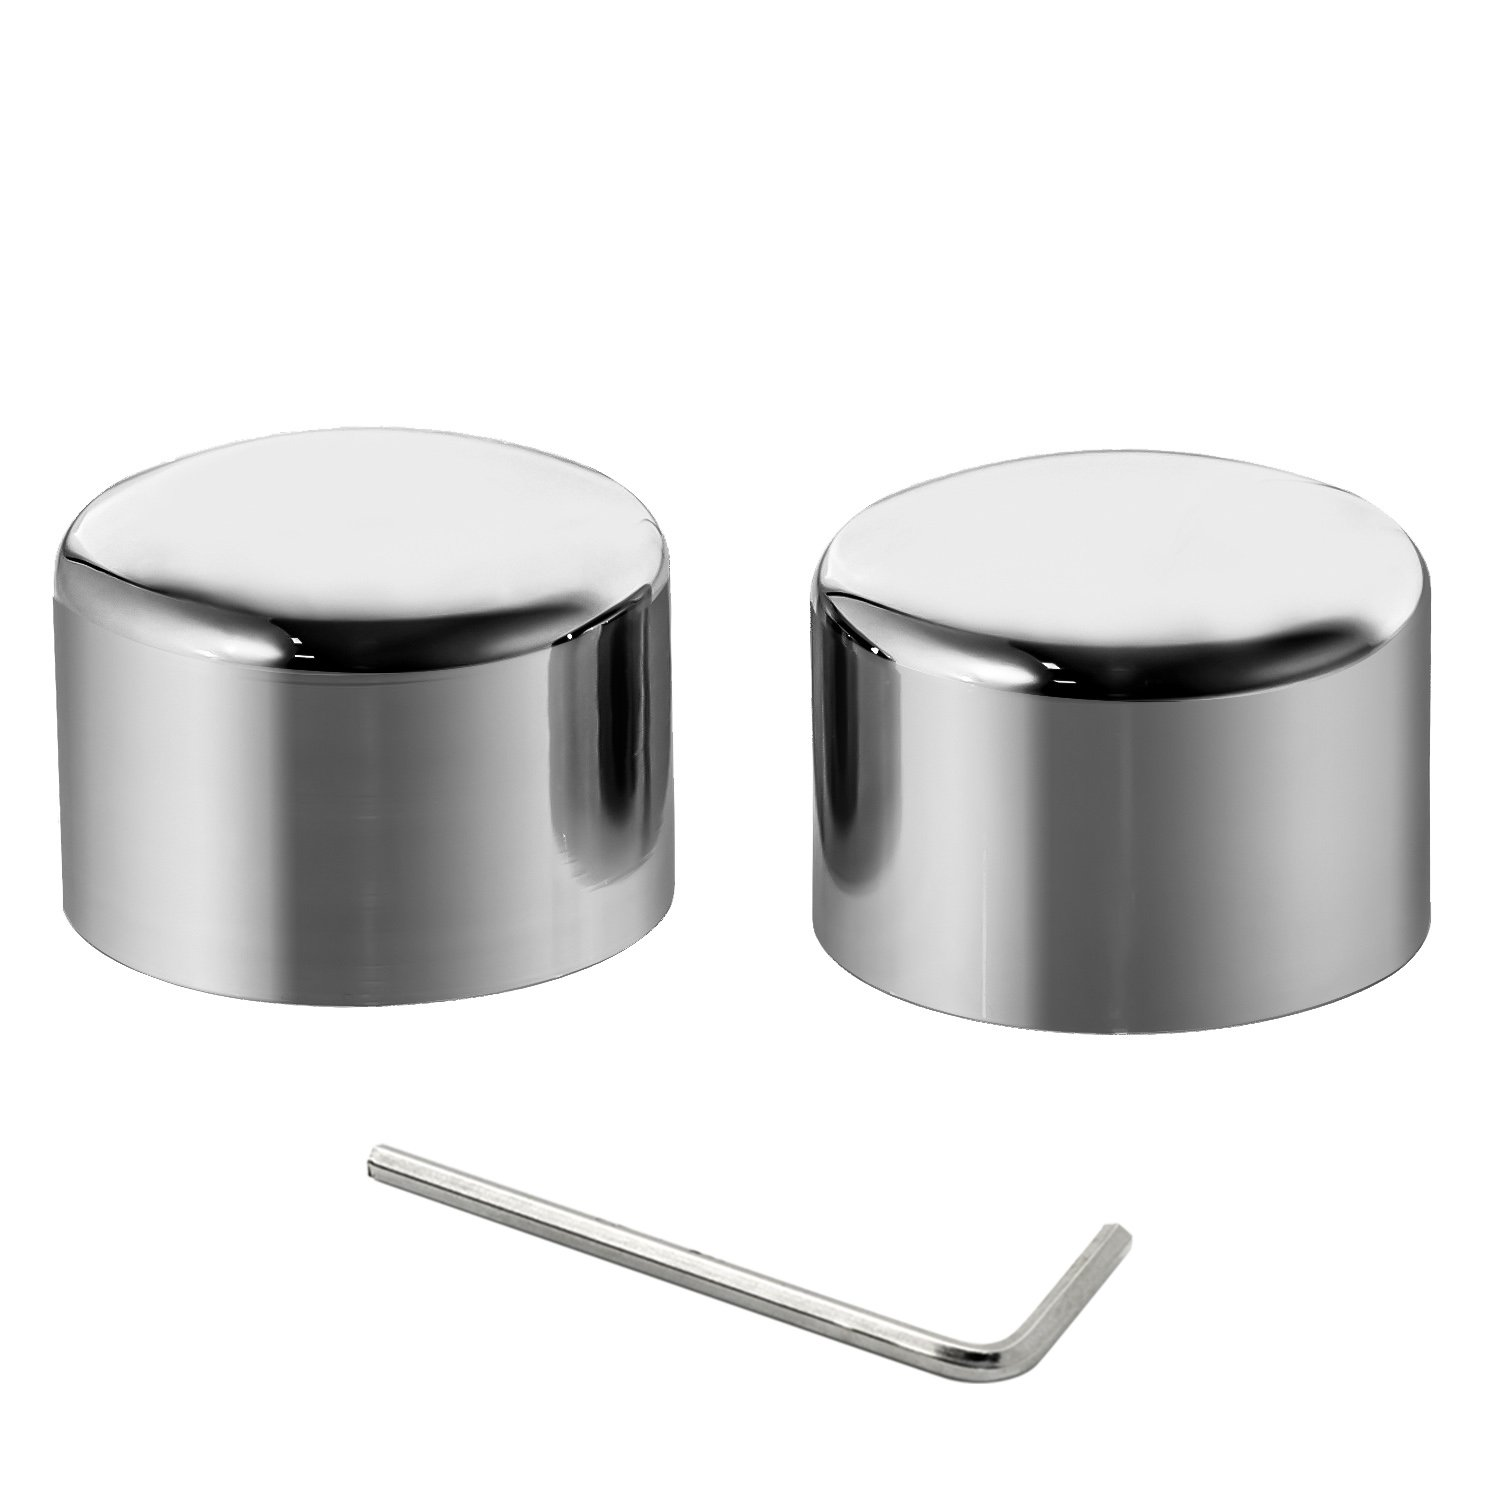 Senkauto Front Axle Cap Nut Cover For Harley Sportster Touring Dyna Touring Softail Electra Street Glide (Chrome 01)